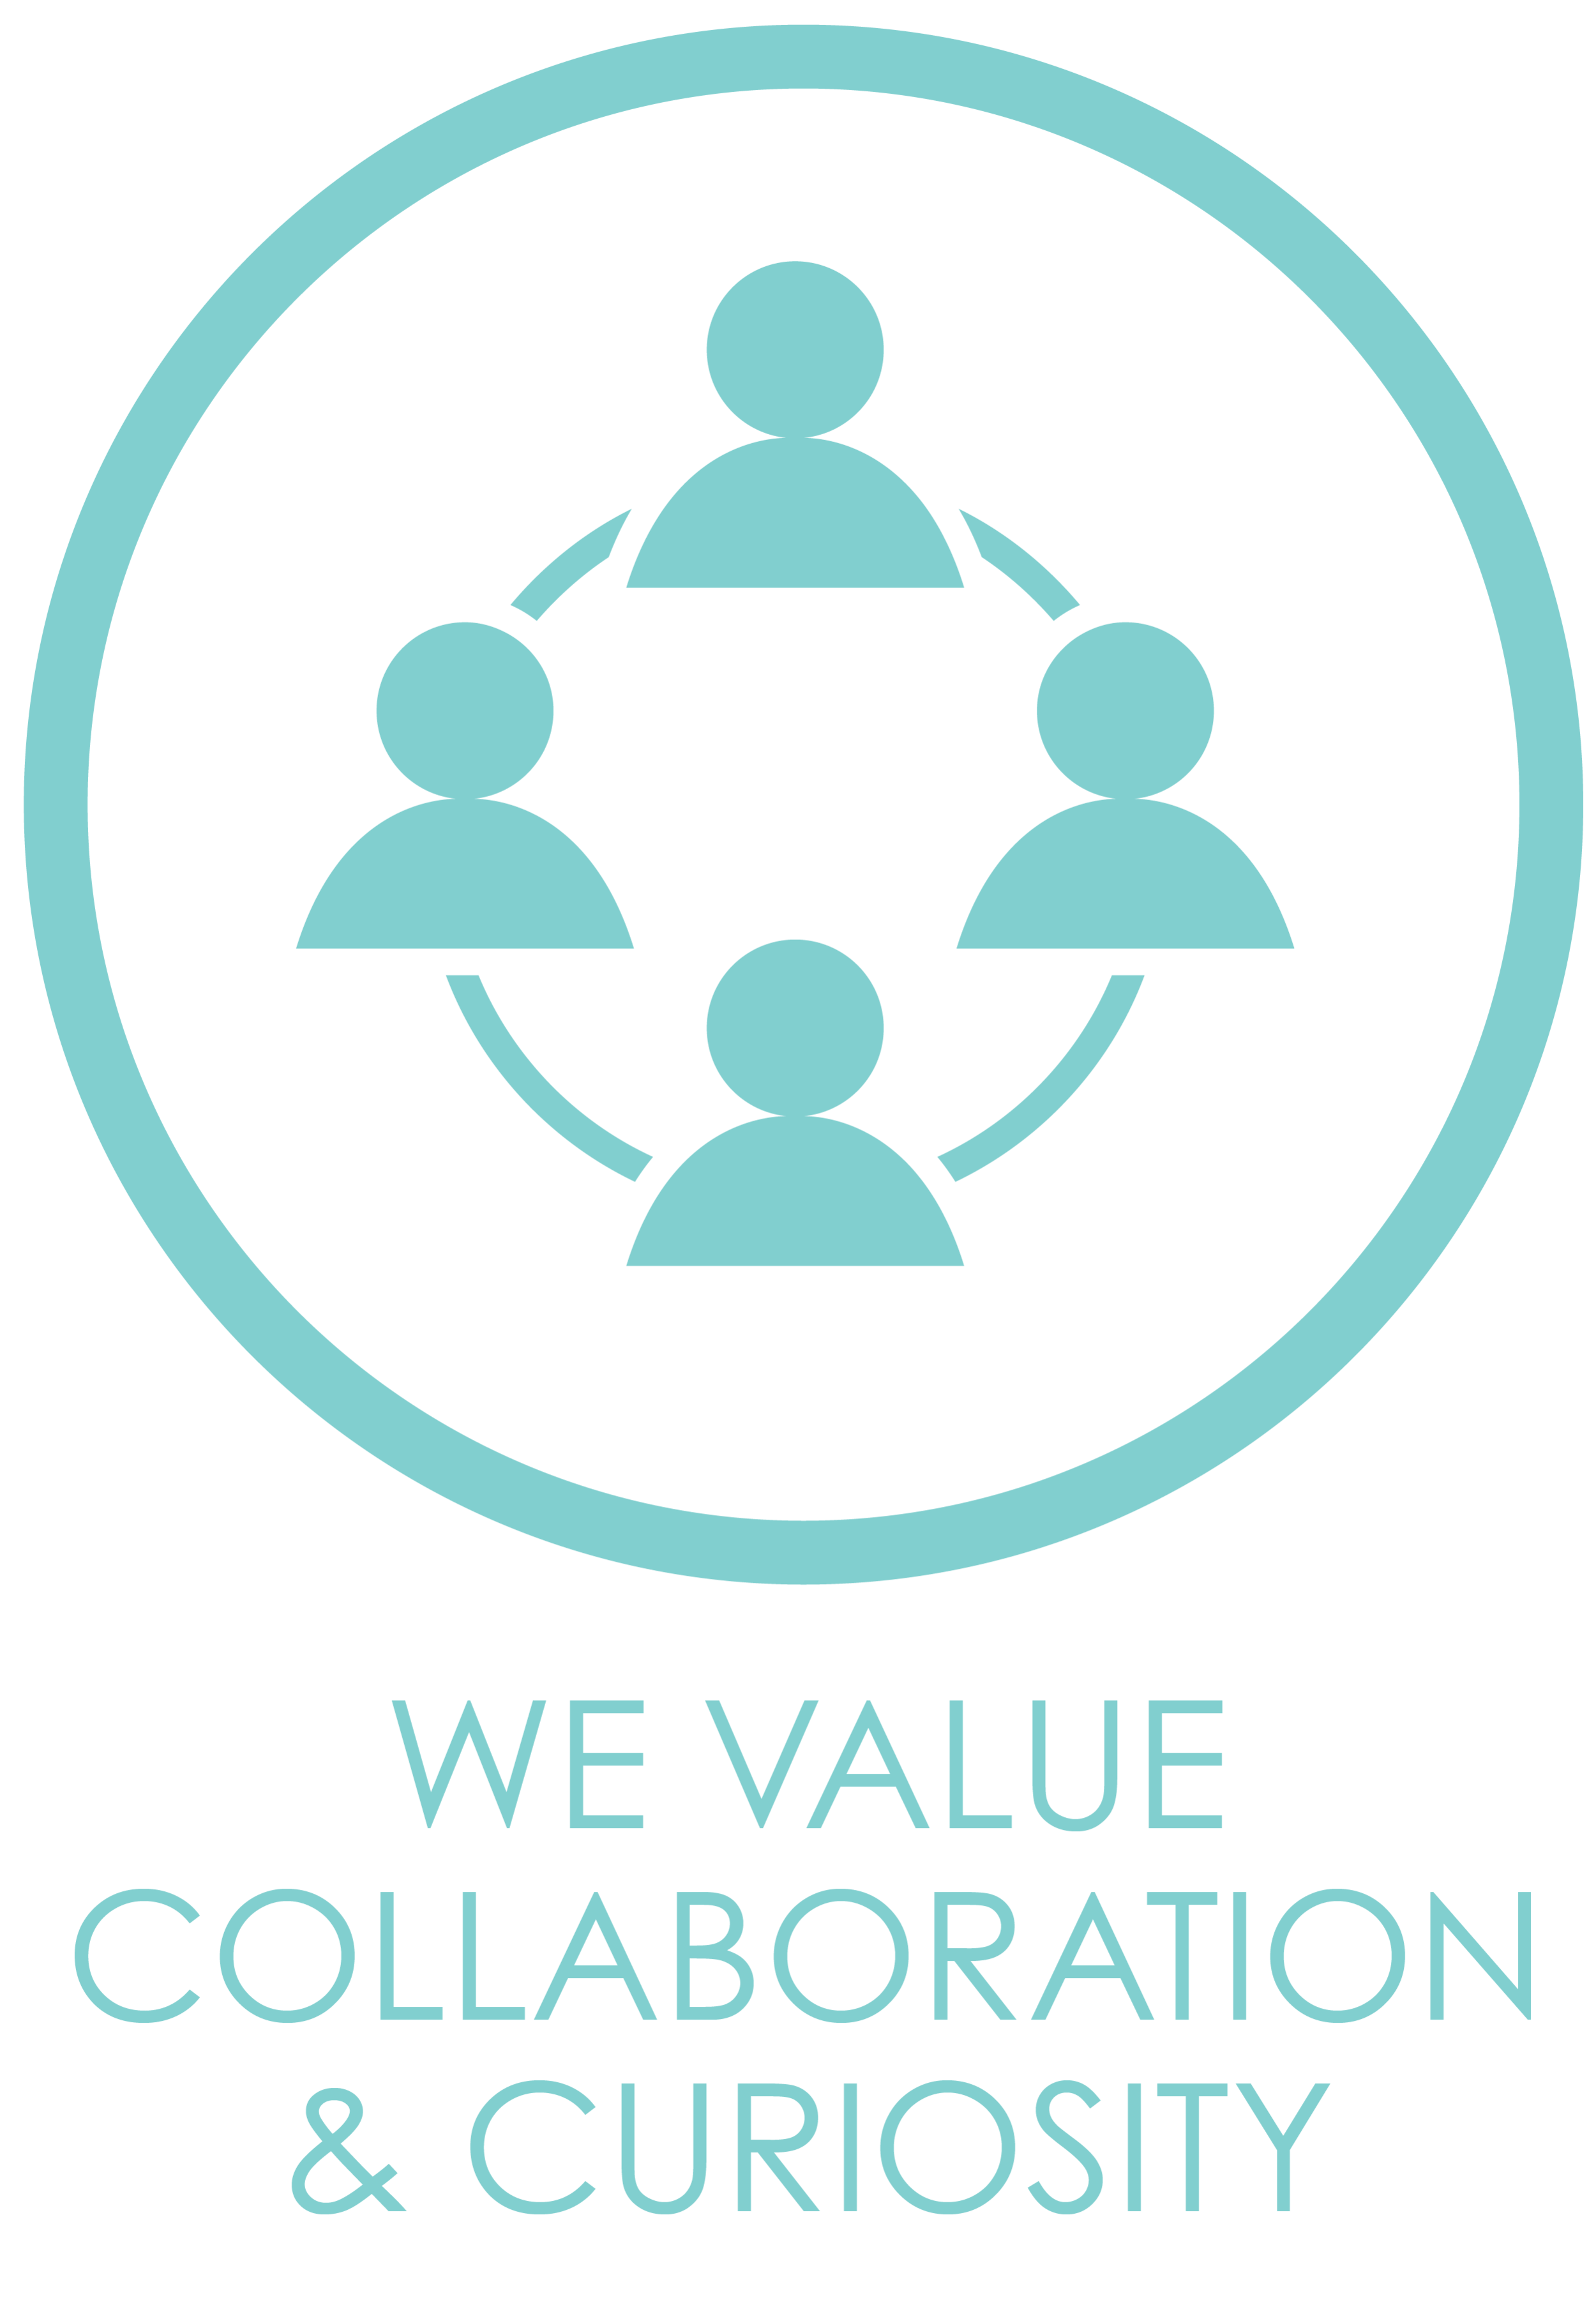 Stoddart Icons_Values_Collaboration_text.png